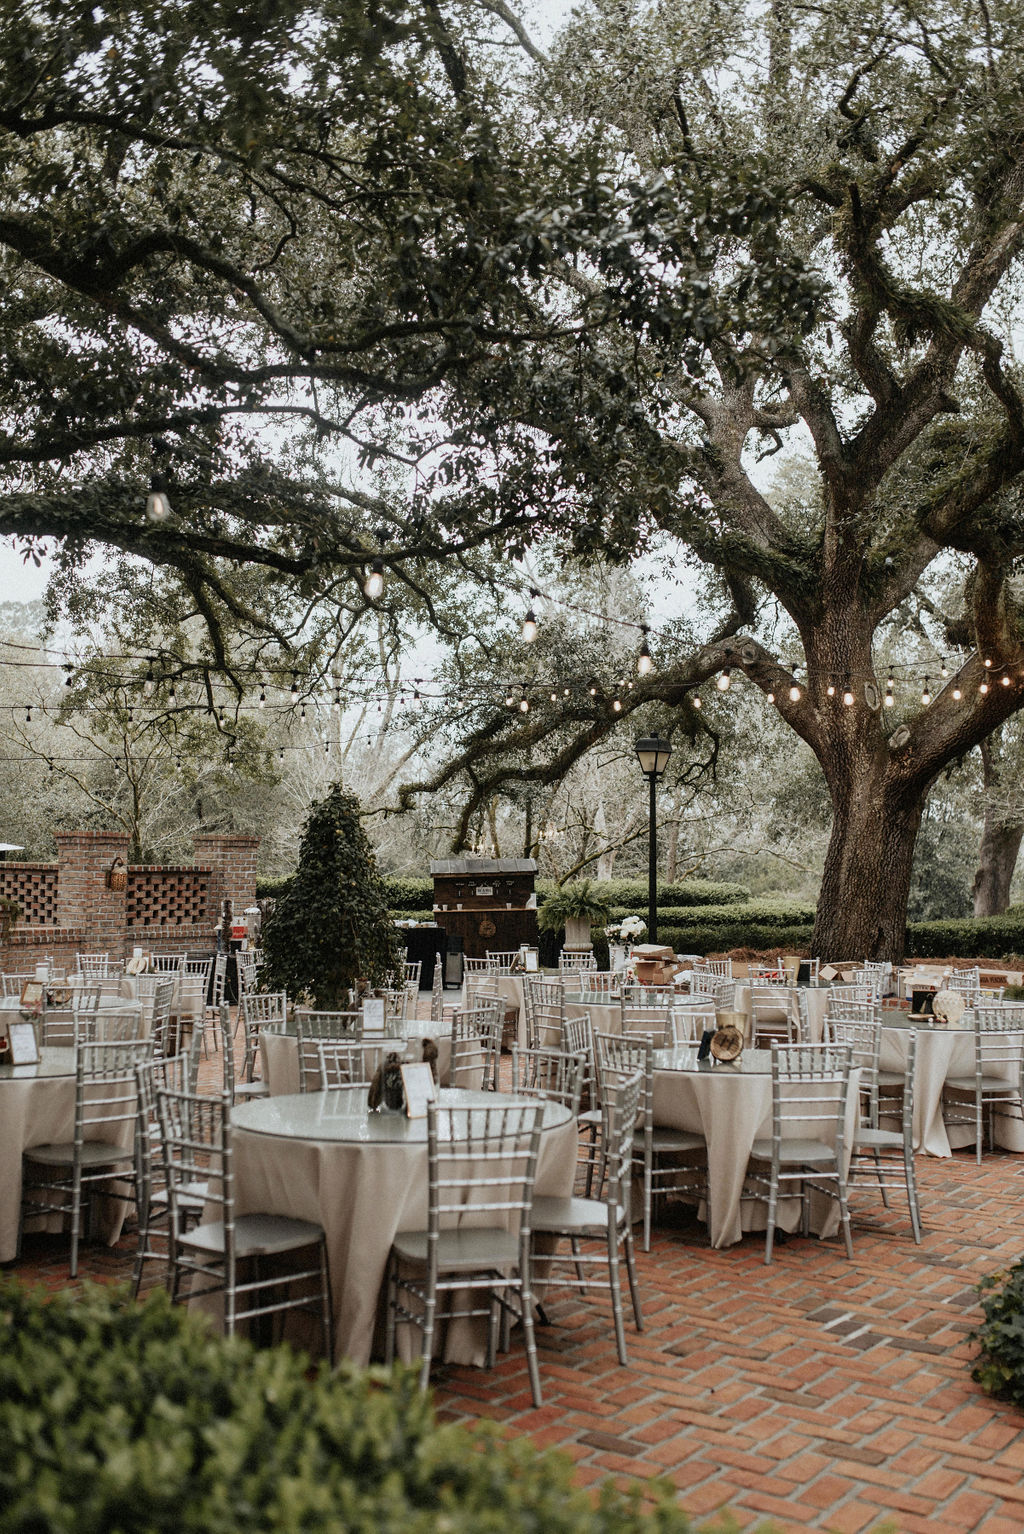 Quinney Oaks Plantation wedding: Magical Winter Wedding by Meghan Melia Photography featured on Nashville Bride Guide!